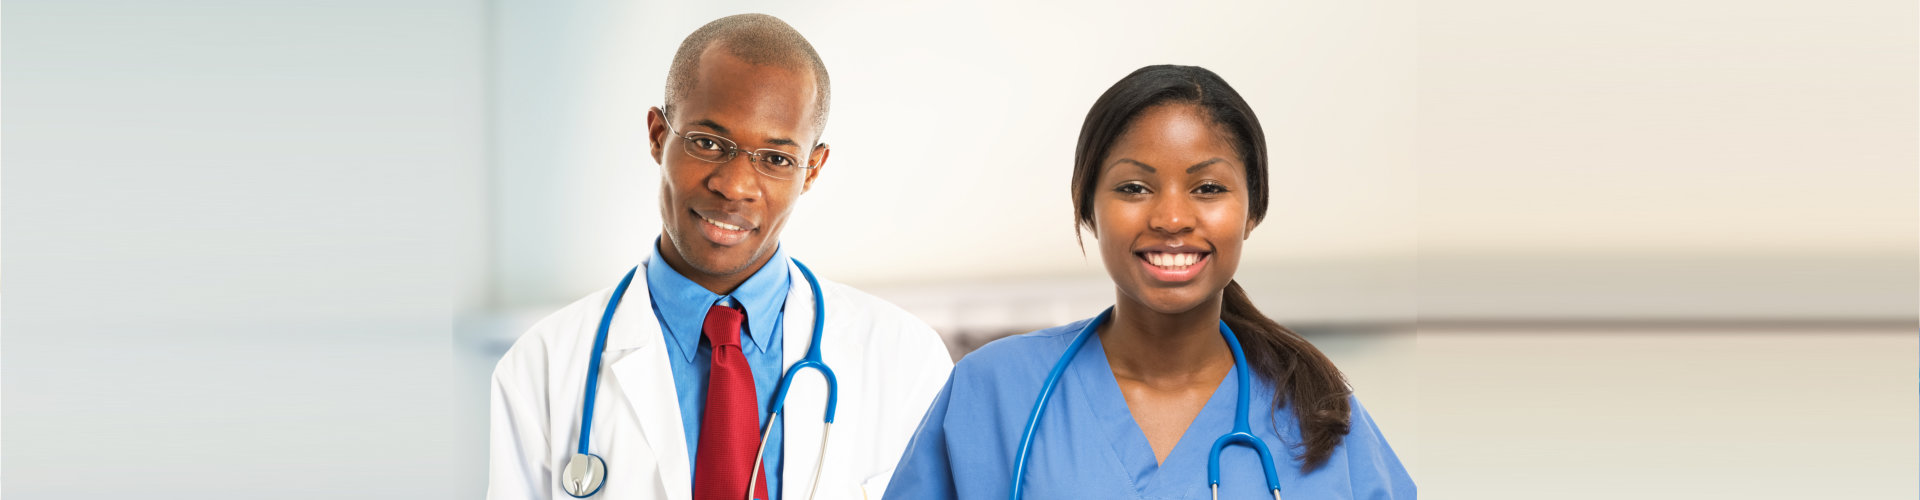 male and female nurse smiling